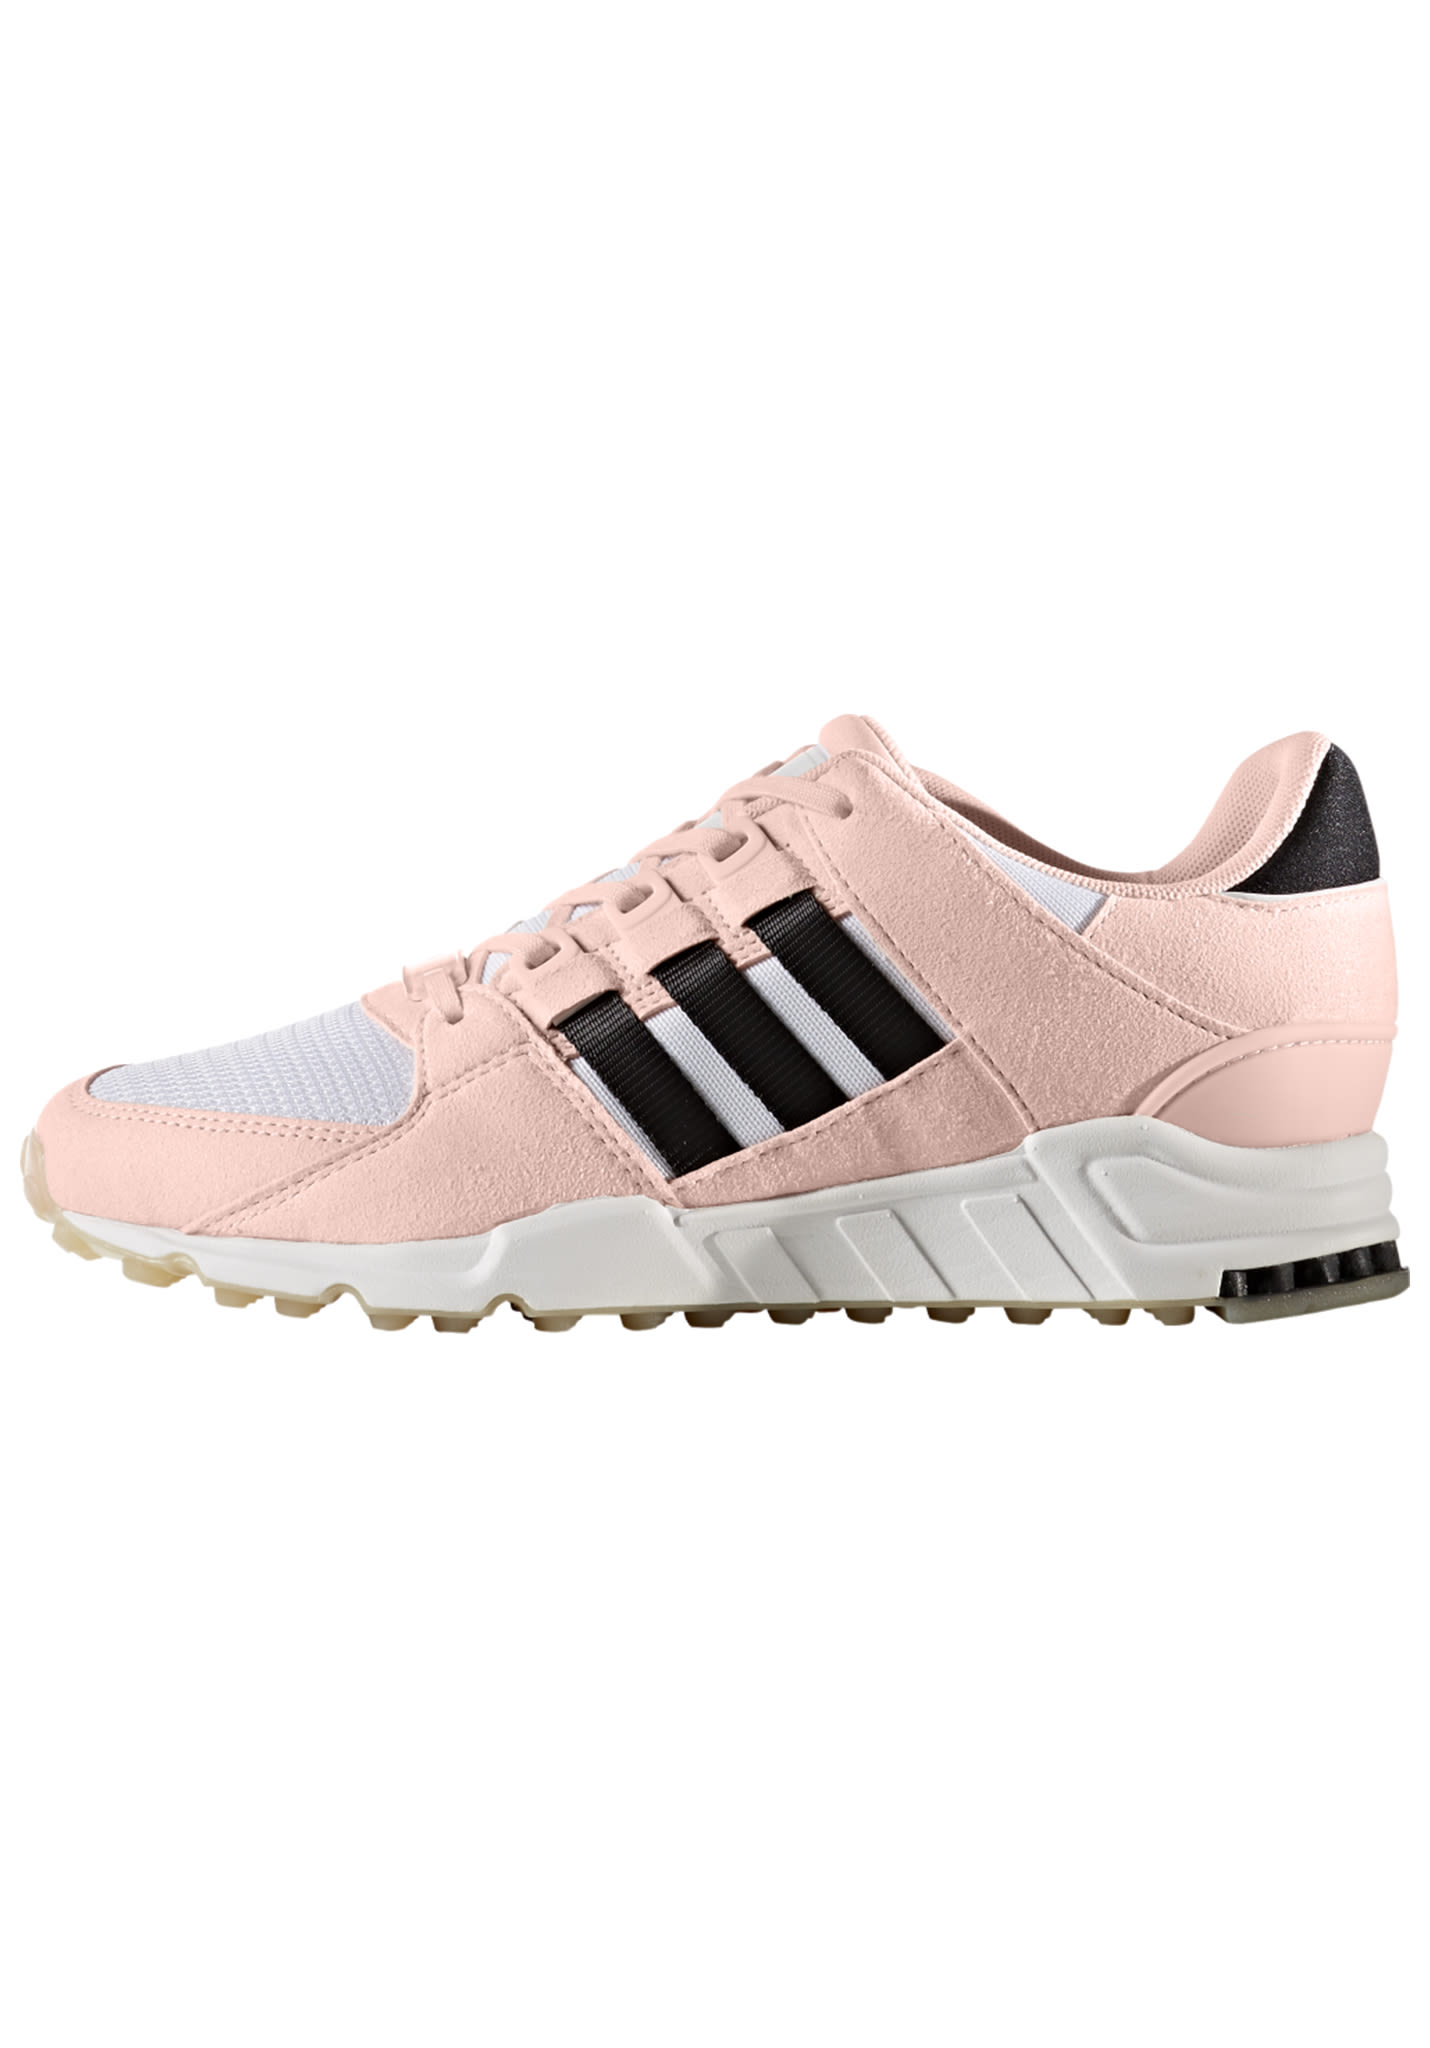 adidas EQT Support RF - Sneaker für Damen - Pink (icey pink f17/core black/ftwr white) FfusWh